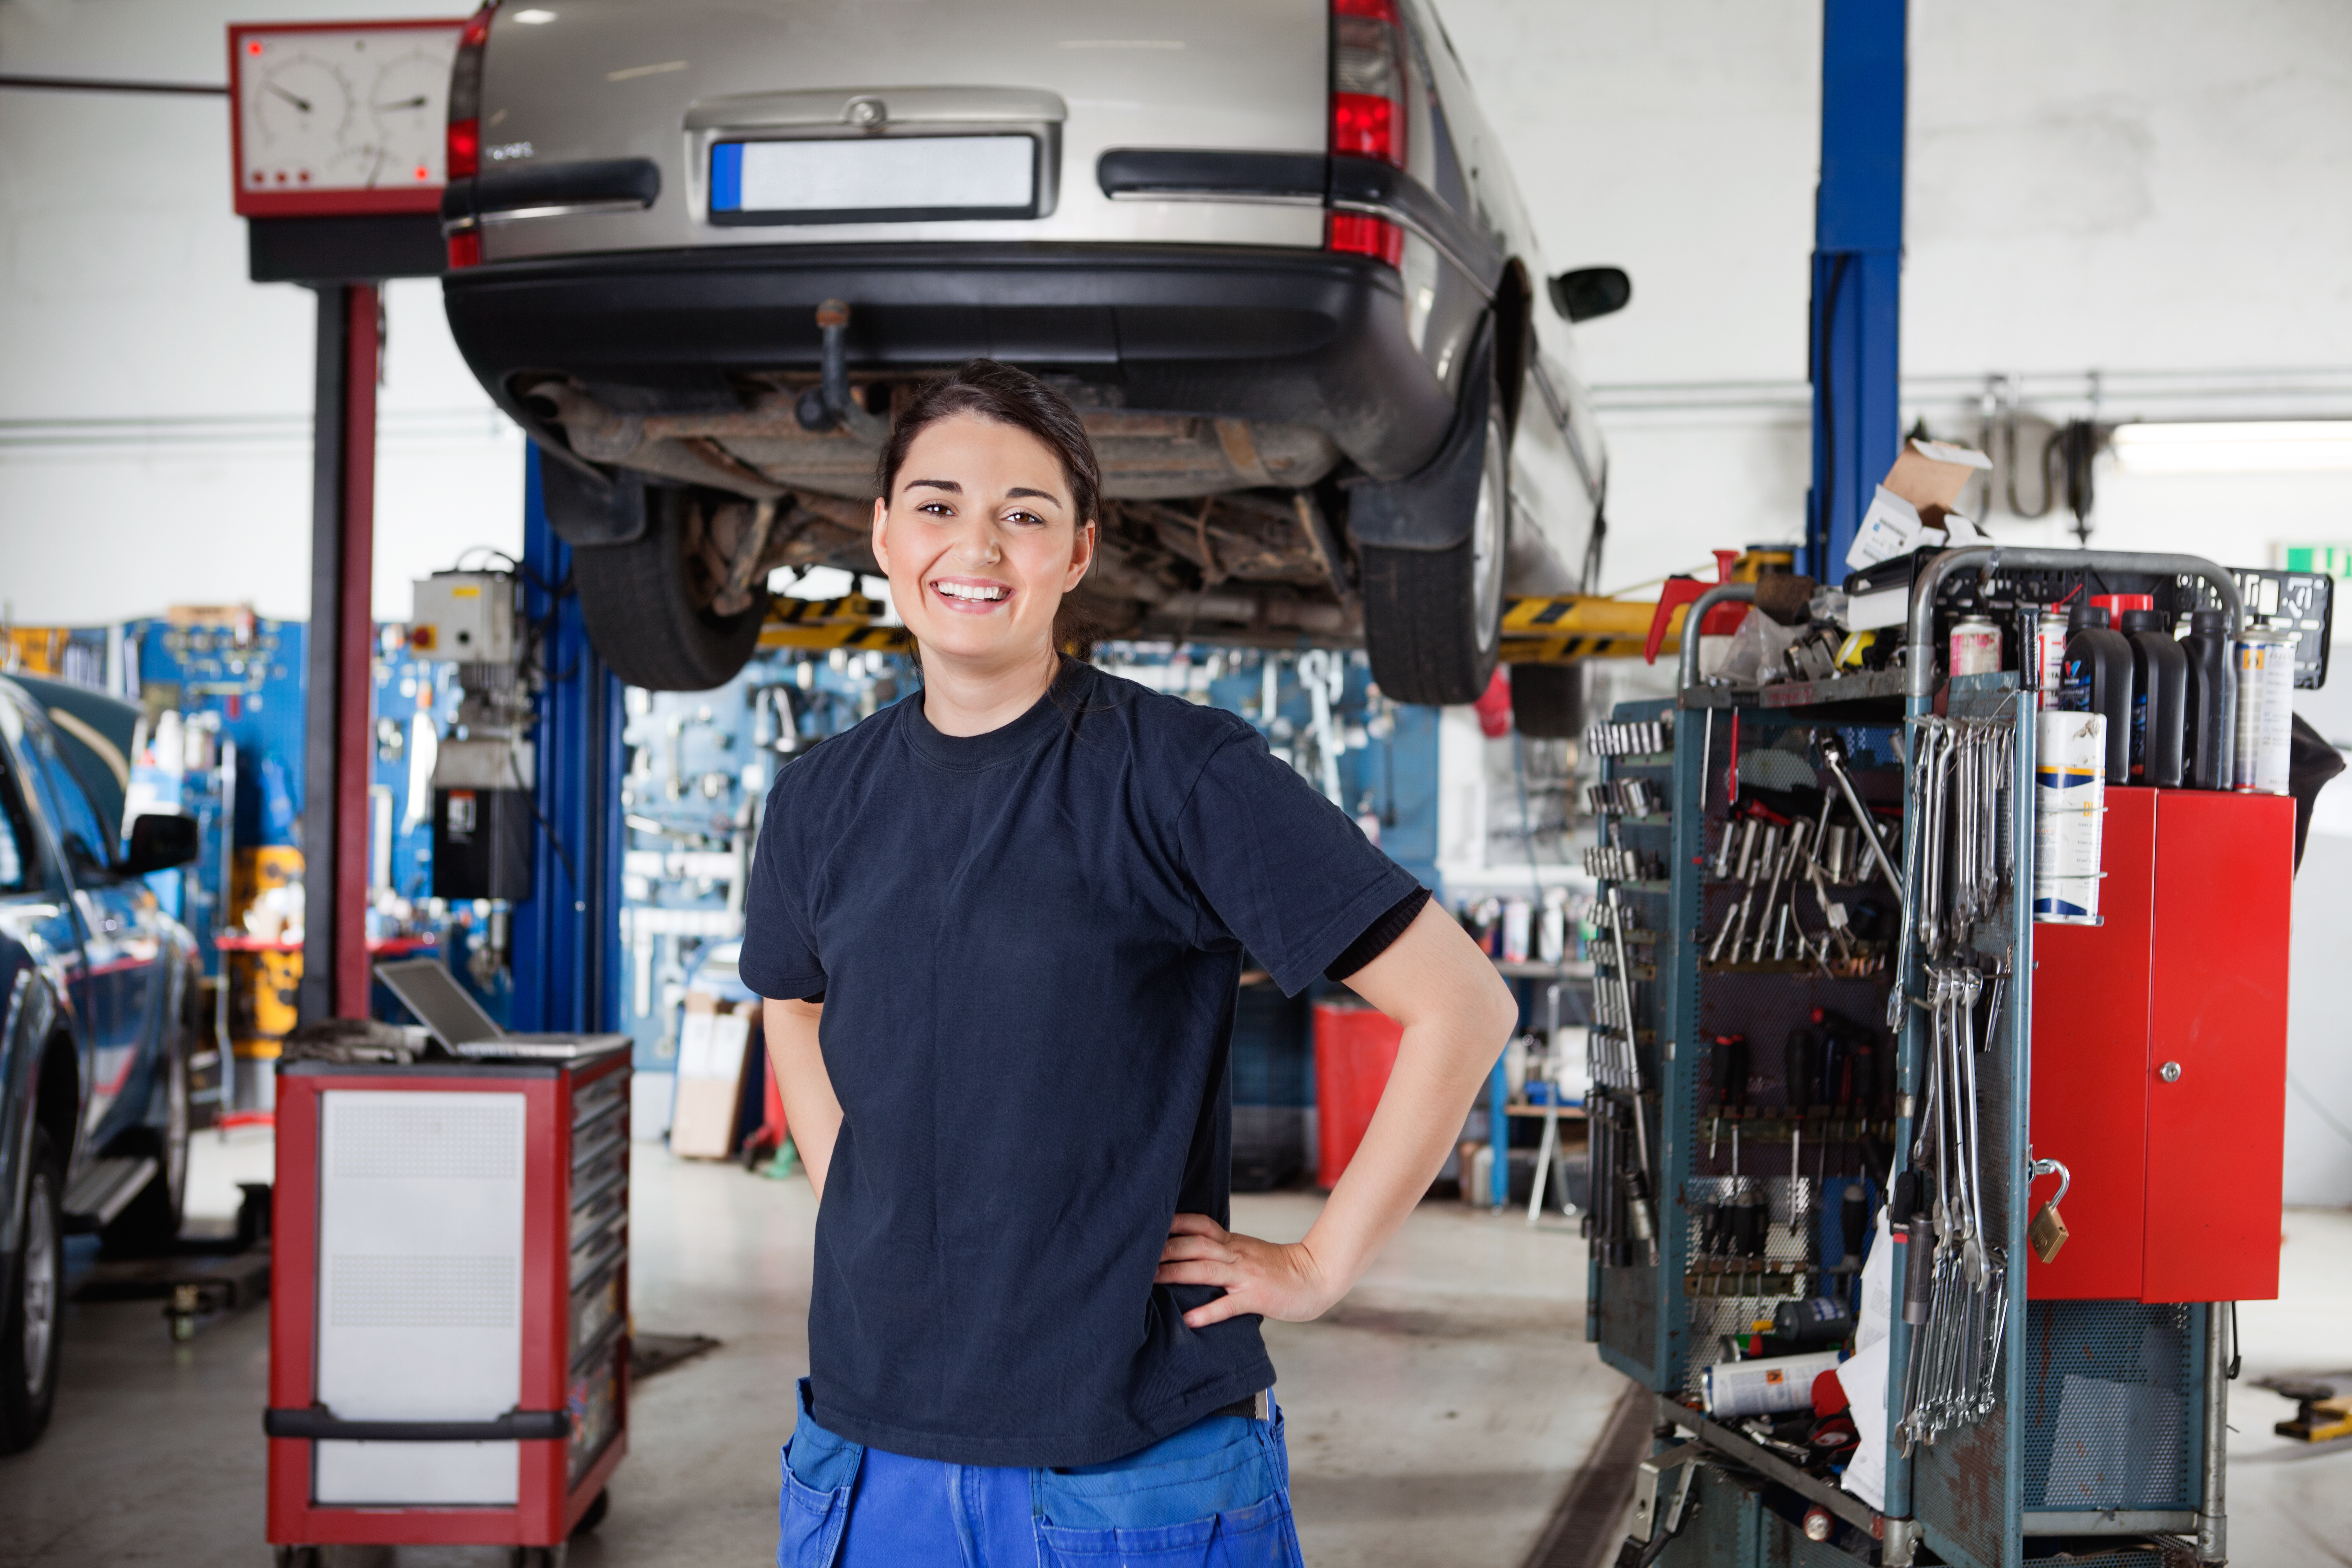 1930239-female-mechanic-portrait